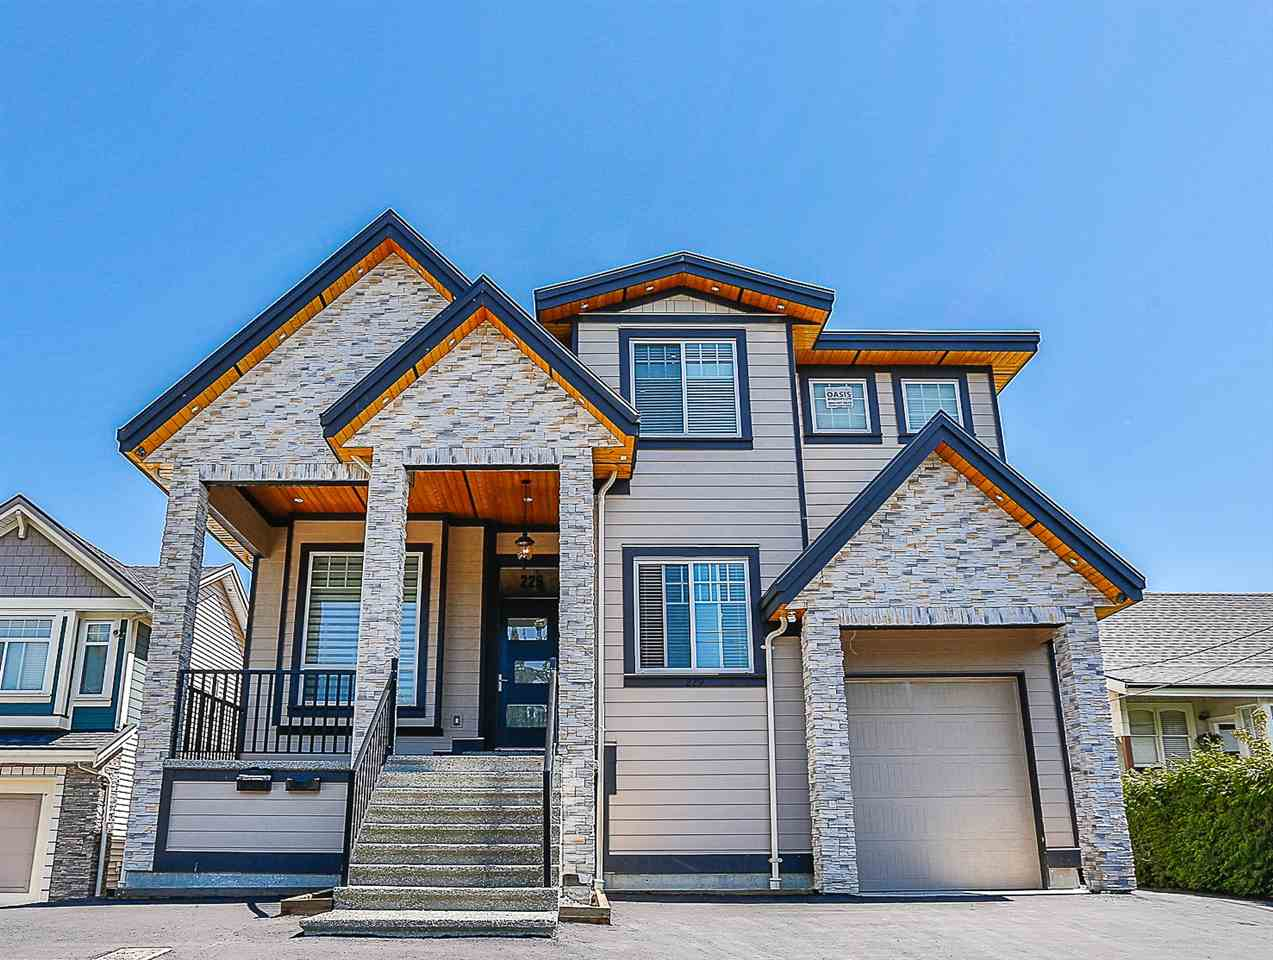 Amazing 2 yr old, 4221 sf, 6 bdrms + den, 5 bath + a 2 bdrm, 1 bath legal suite. 2 lvl home on large 8465 sf lot in evolving Queensborough area close to schools, shopping, transit & parks. This majestic palace has soaring high ceilings in living room/dining room, a beautiful spacious white kitchen with SS appliances, Breakfast Bar, and a separate spice/wok kitchen, family room off the open kitchen, HW heating Hvac and roughed in for A/C (just need the compressor), skylights, crown moldings throughout, giant double garage tandem, extensive crawlspace for storage & more! Balance of 2-5-10 Warranty.